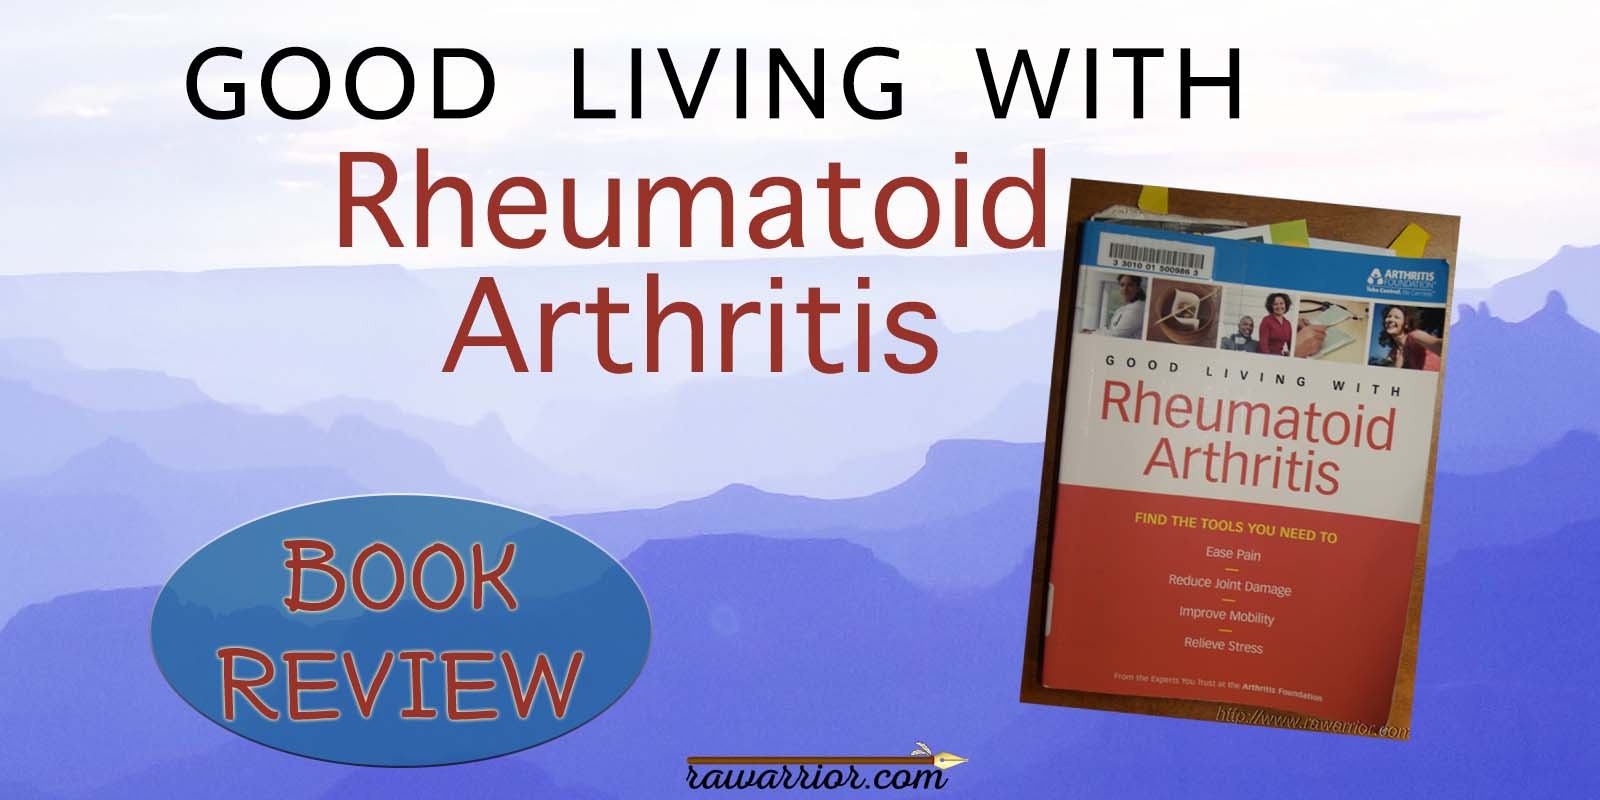 Good Living with Rheumatoid Arthritis